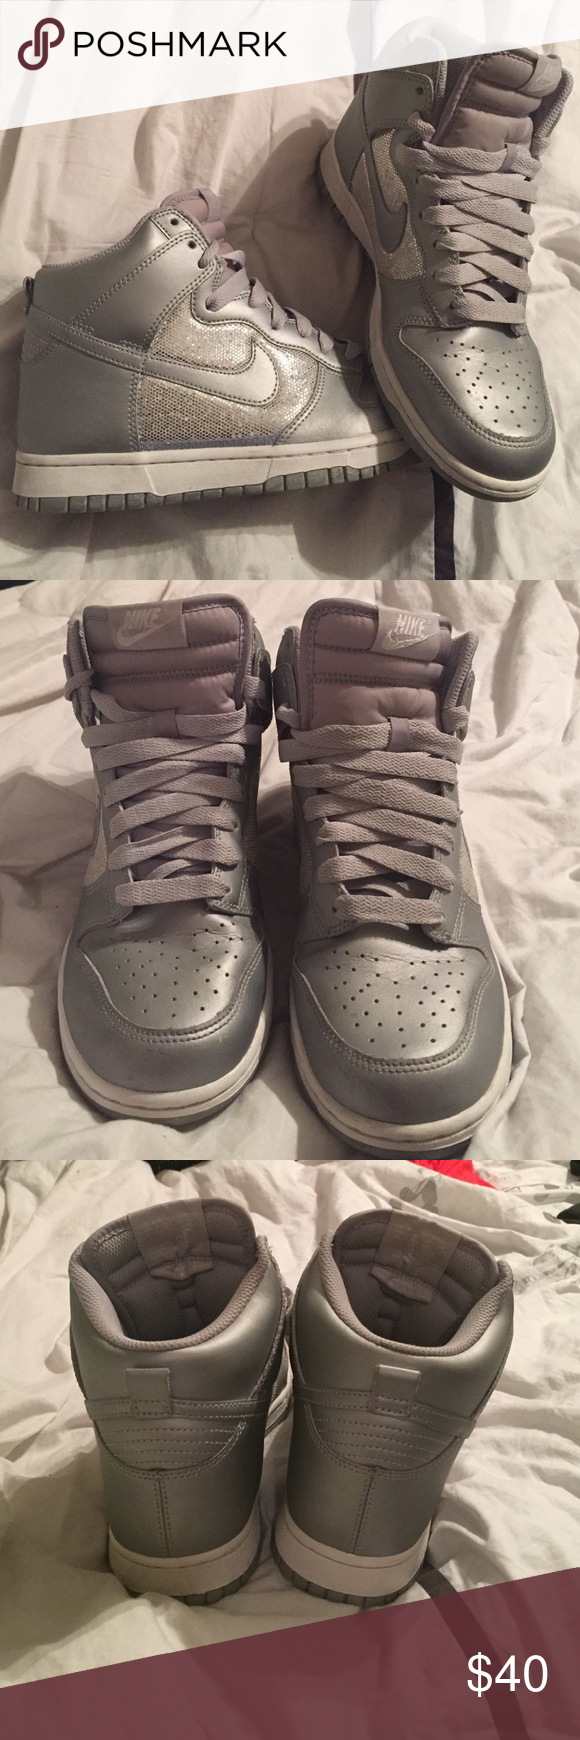 Nike silver hi-tops Nike silver and sequin hi-tops. Like-new condition Nike Shoes Sneakers